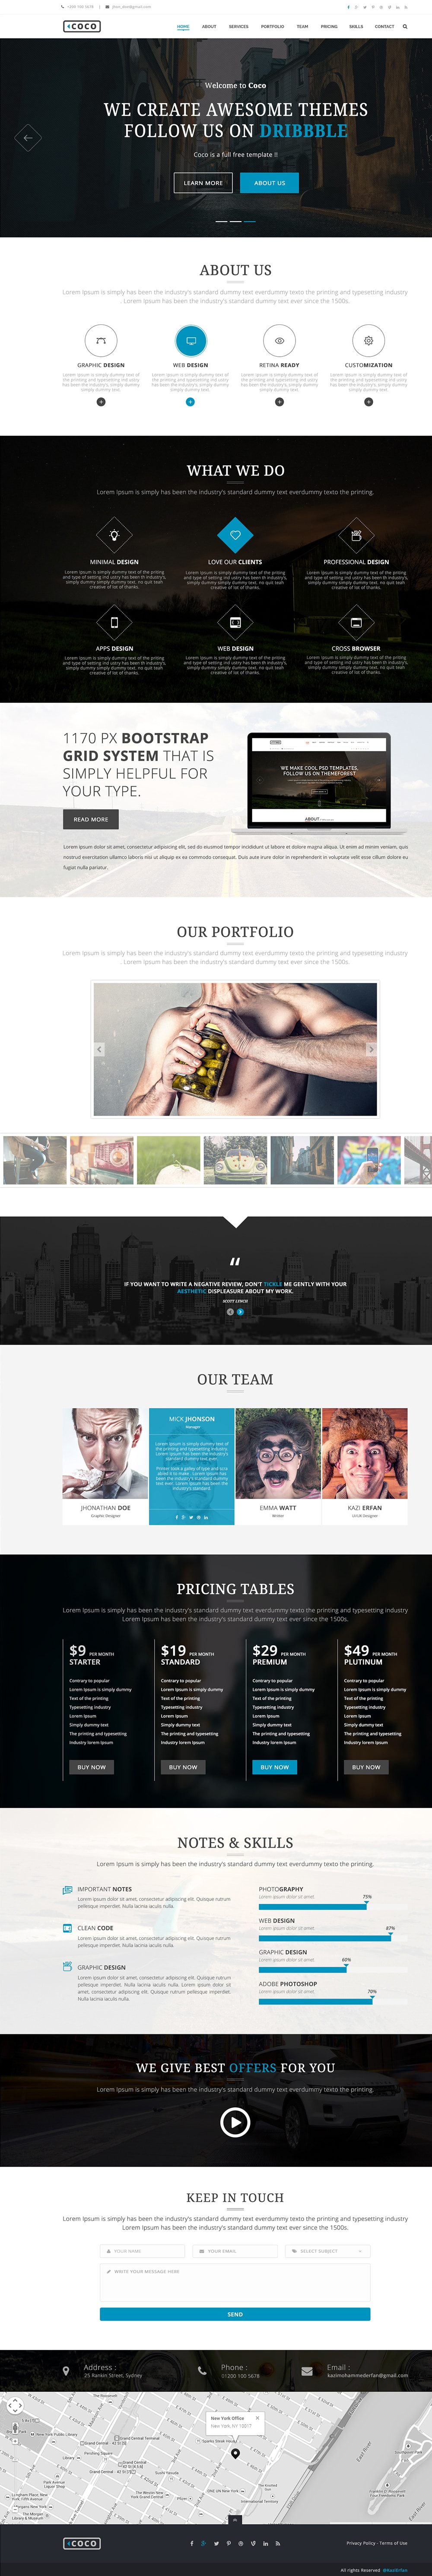 Coco - Business Theme Free PSD